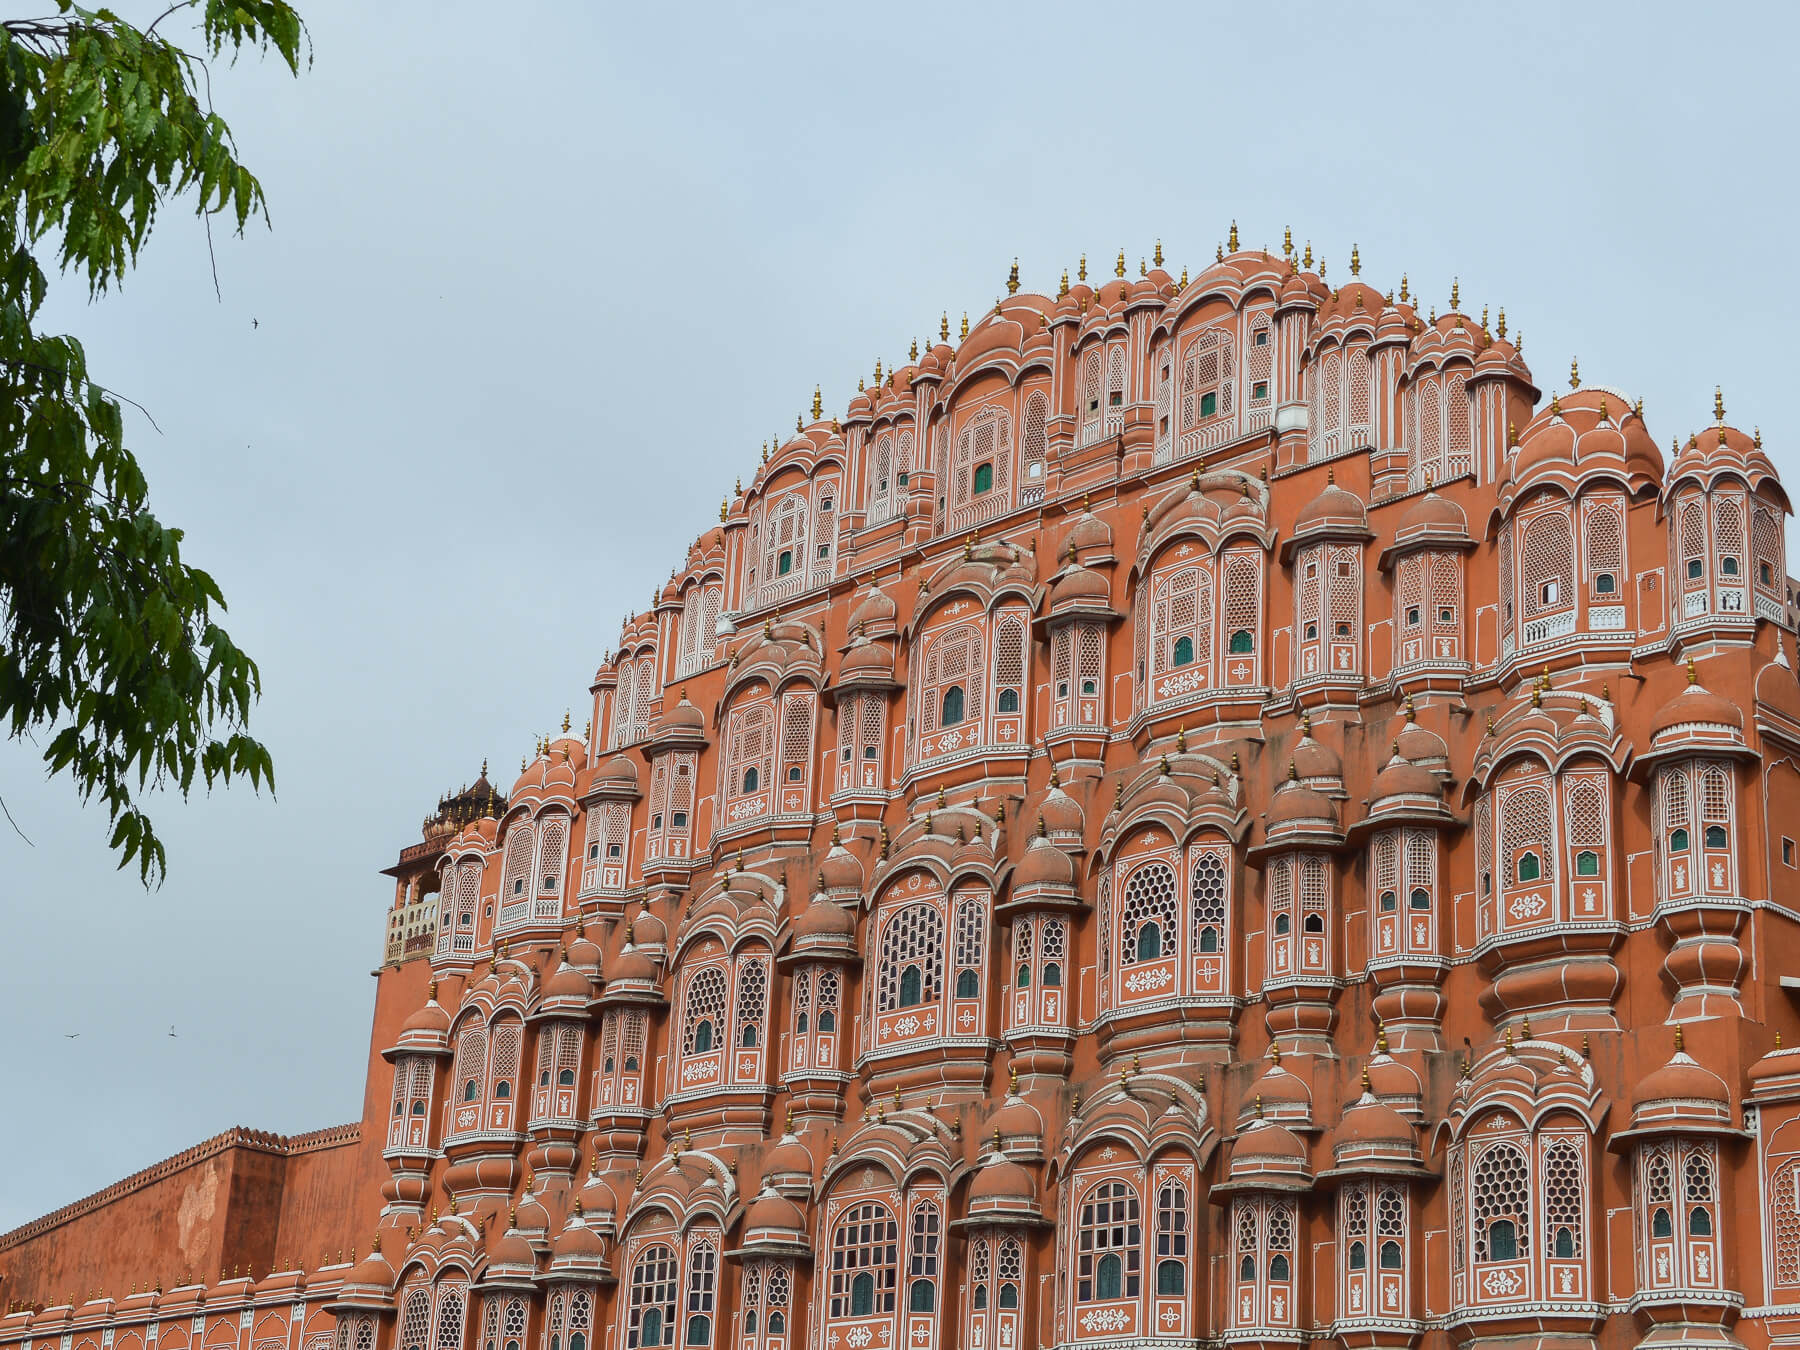 Pink fort with white trim windows in Jaipur